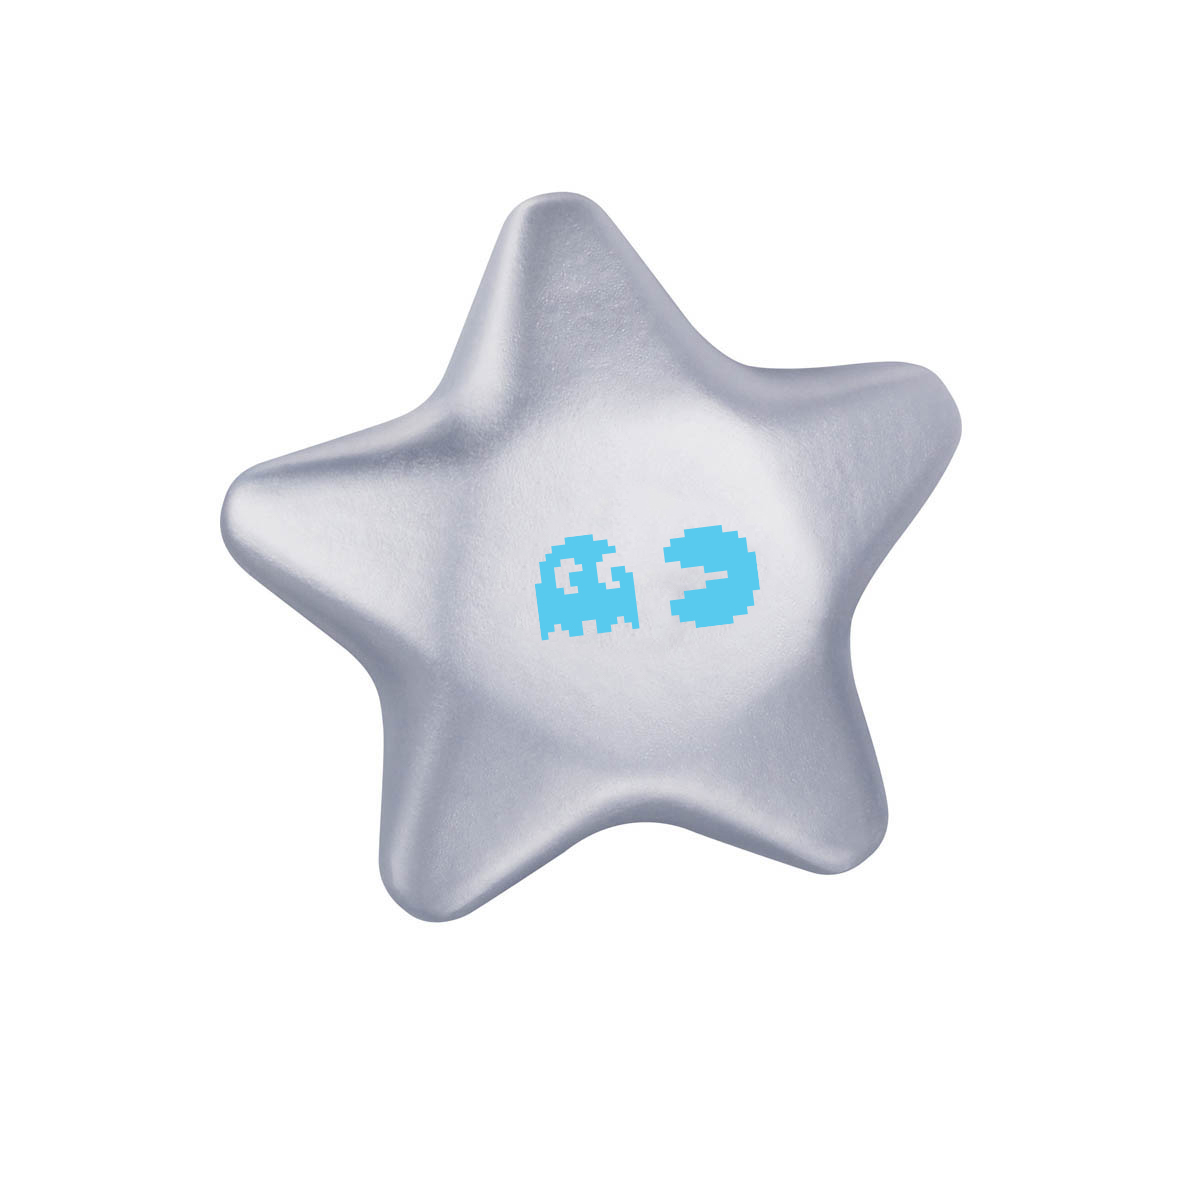 134882 cosmic stress reliever one color one location imprint